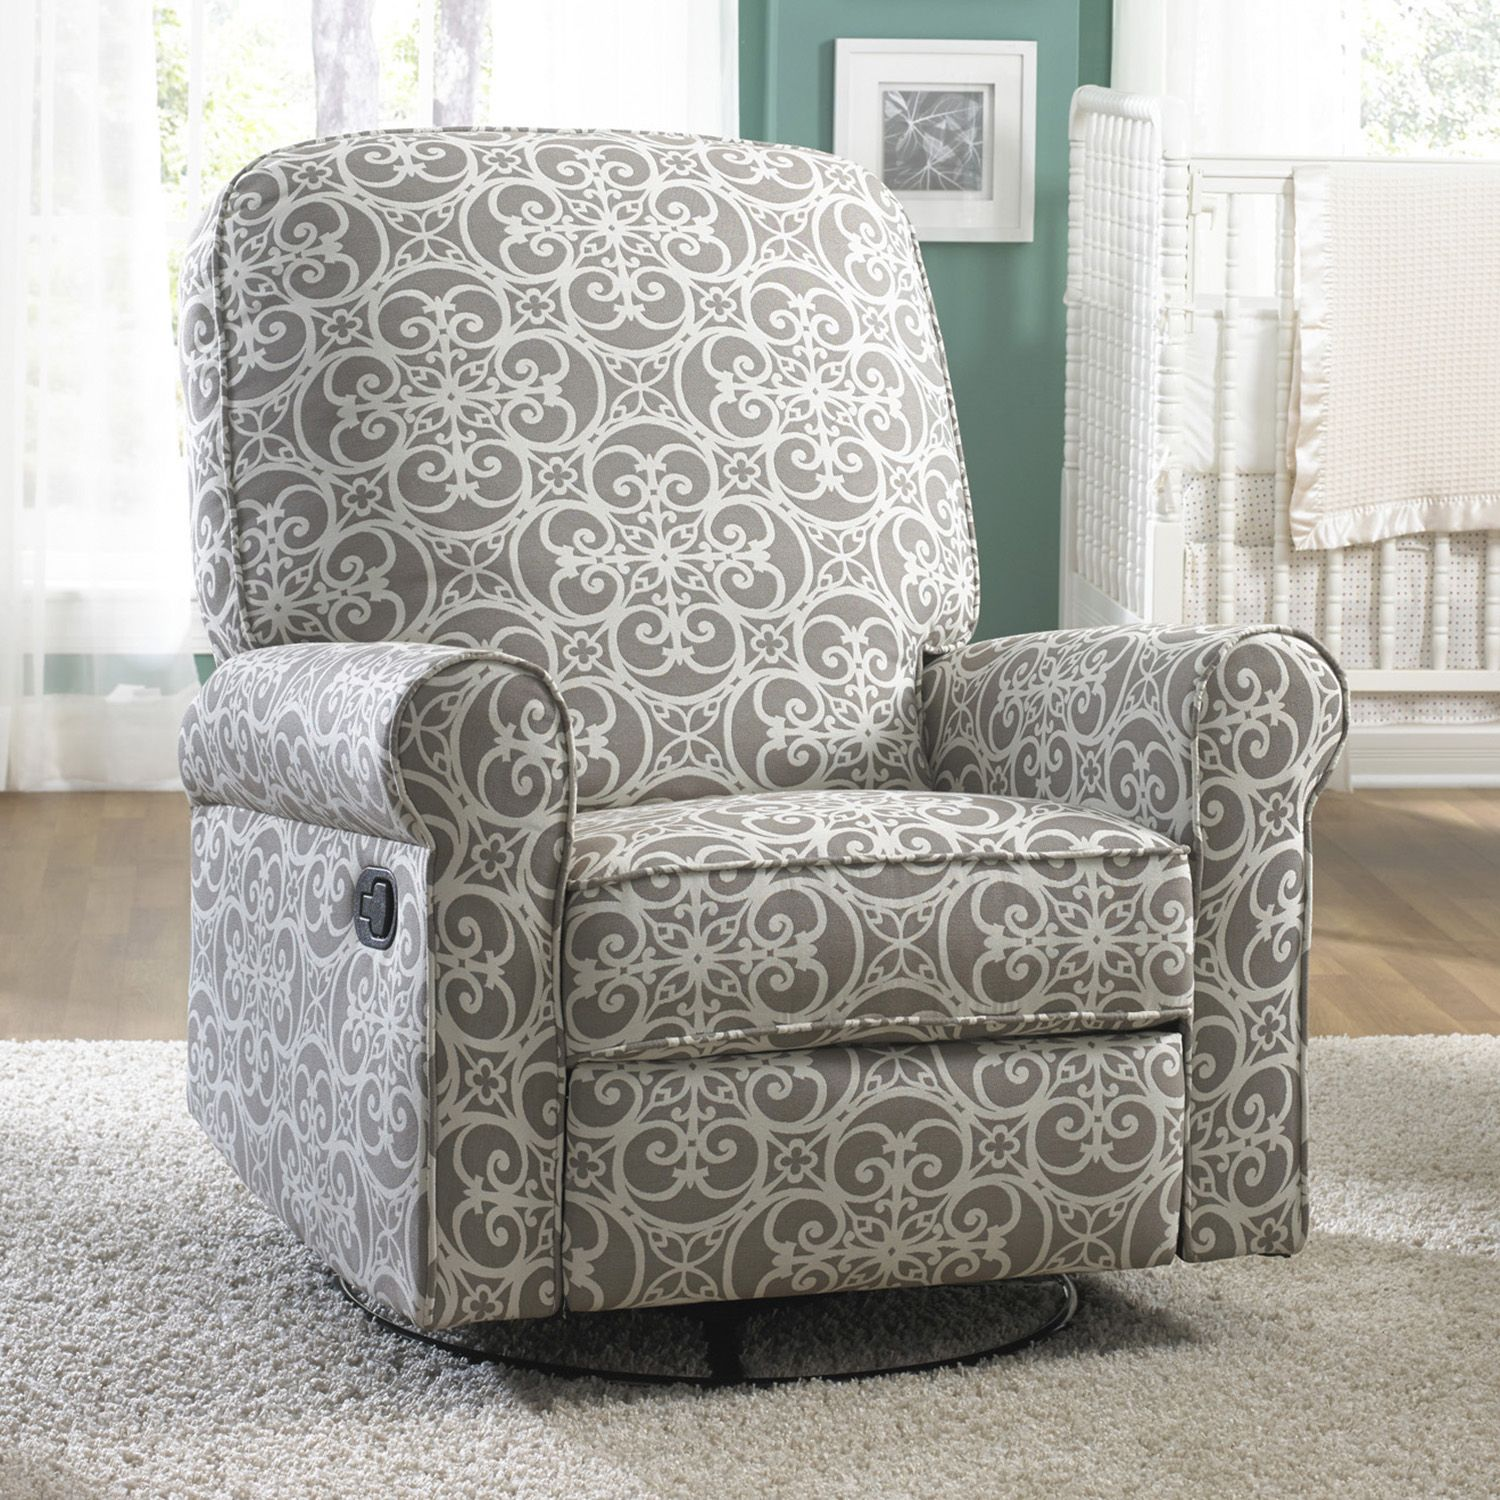 Pulaski Ashewick Swivel Glider Recliner Chair & Ashewick Swivel Glider Recliner Chair islam-shia.org